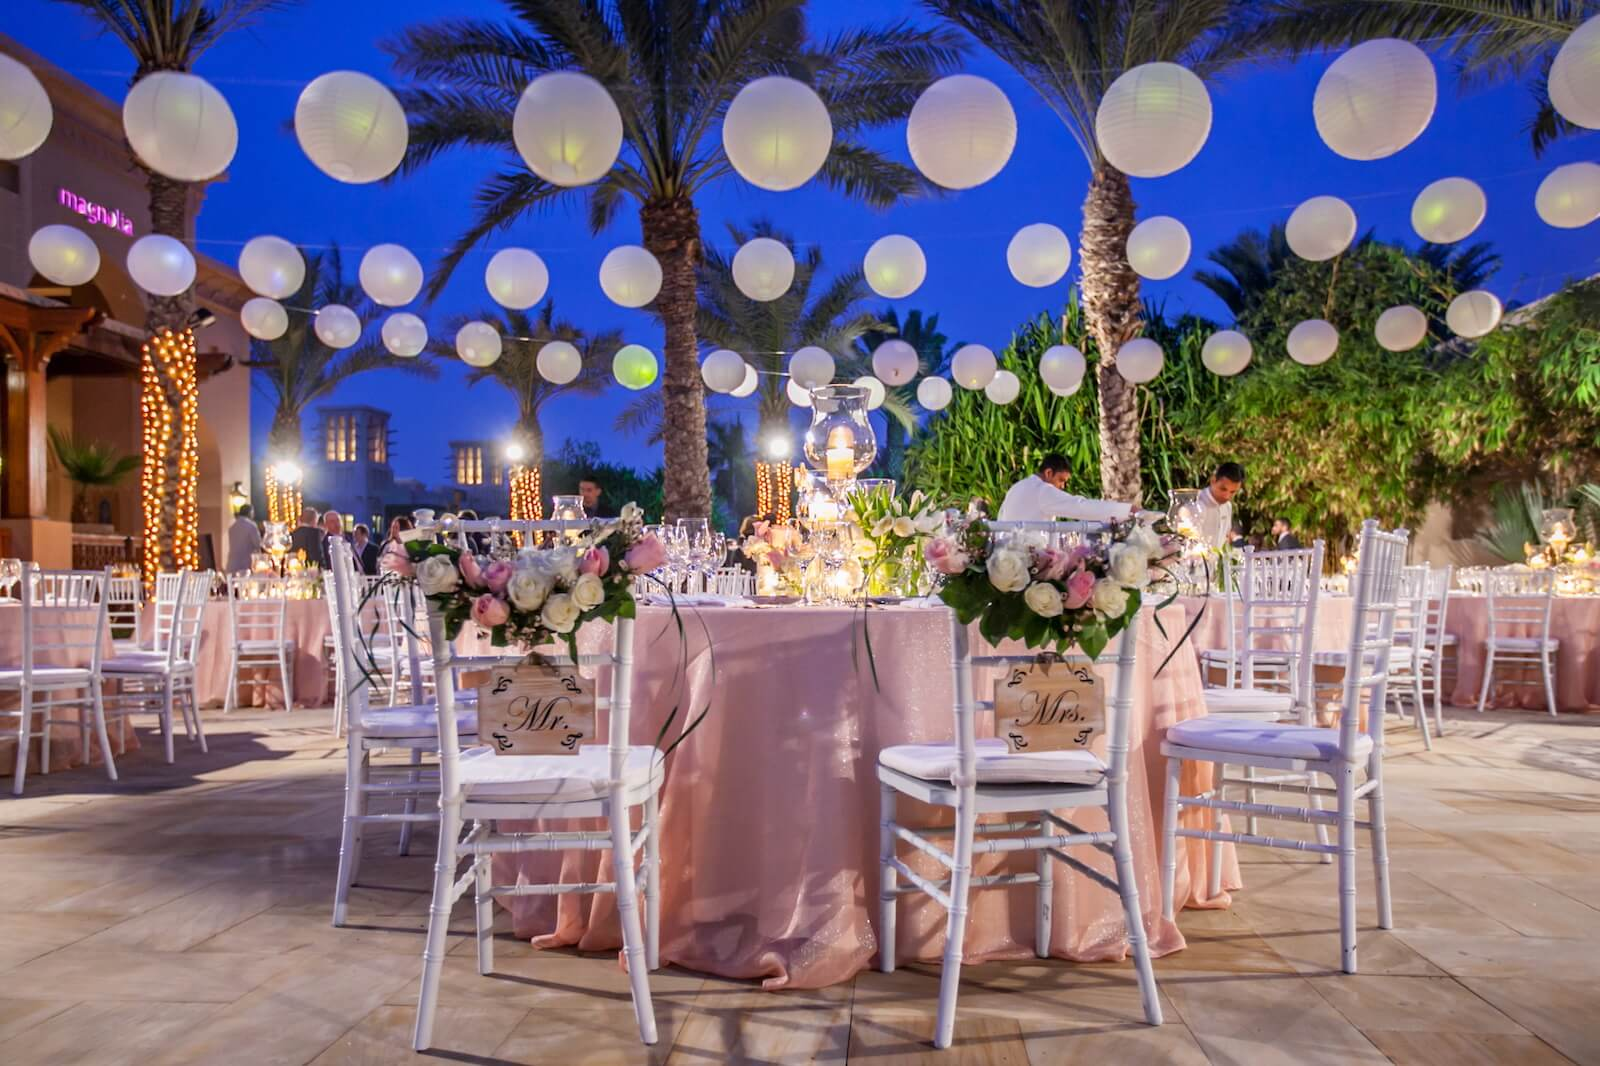 wedding weddings events dubai exotic fabulous locations hello abroad planners event topteny